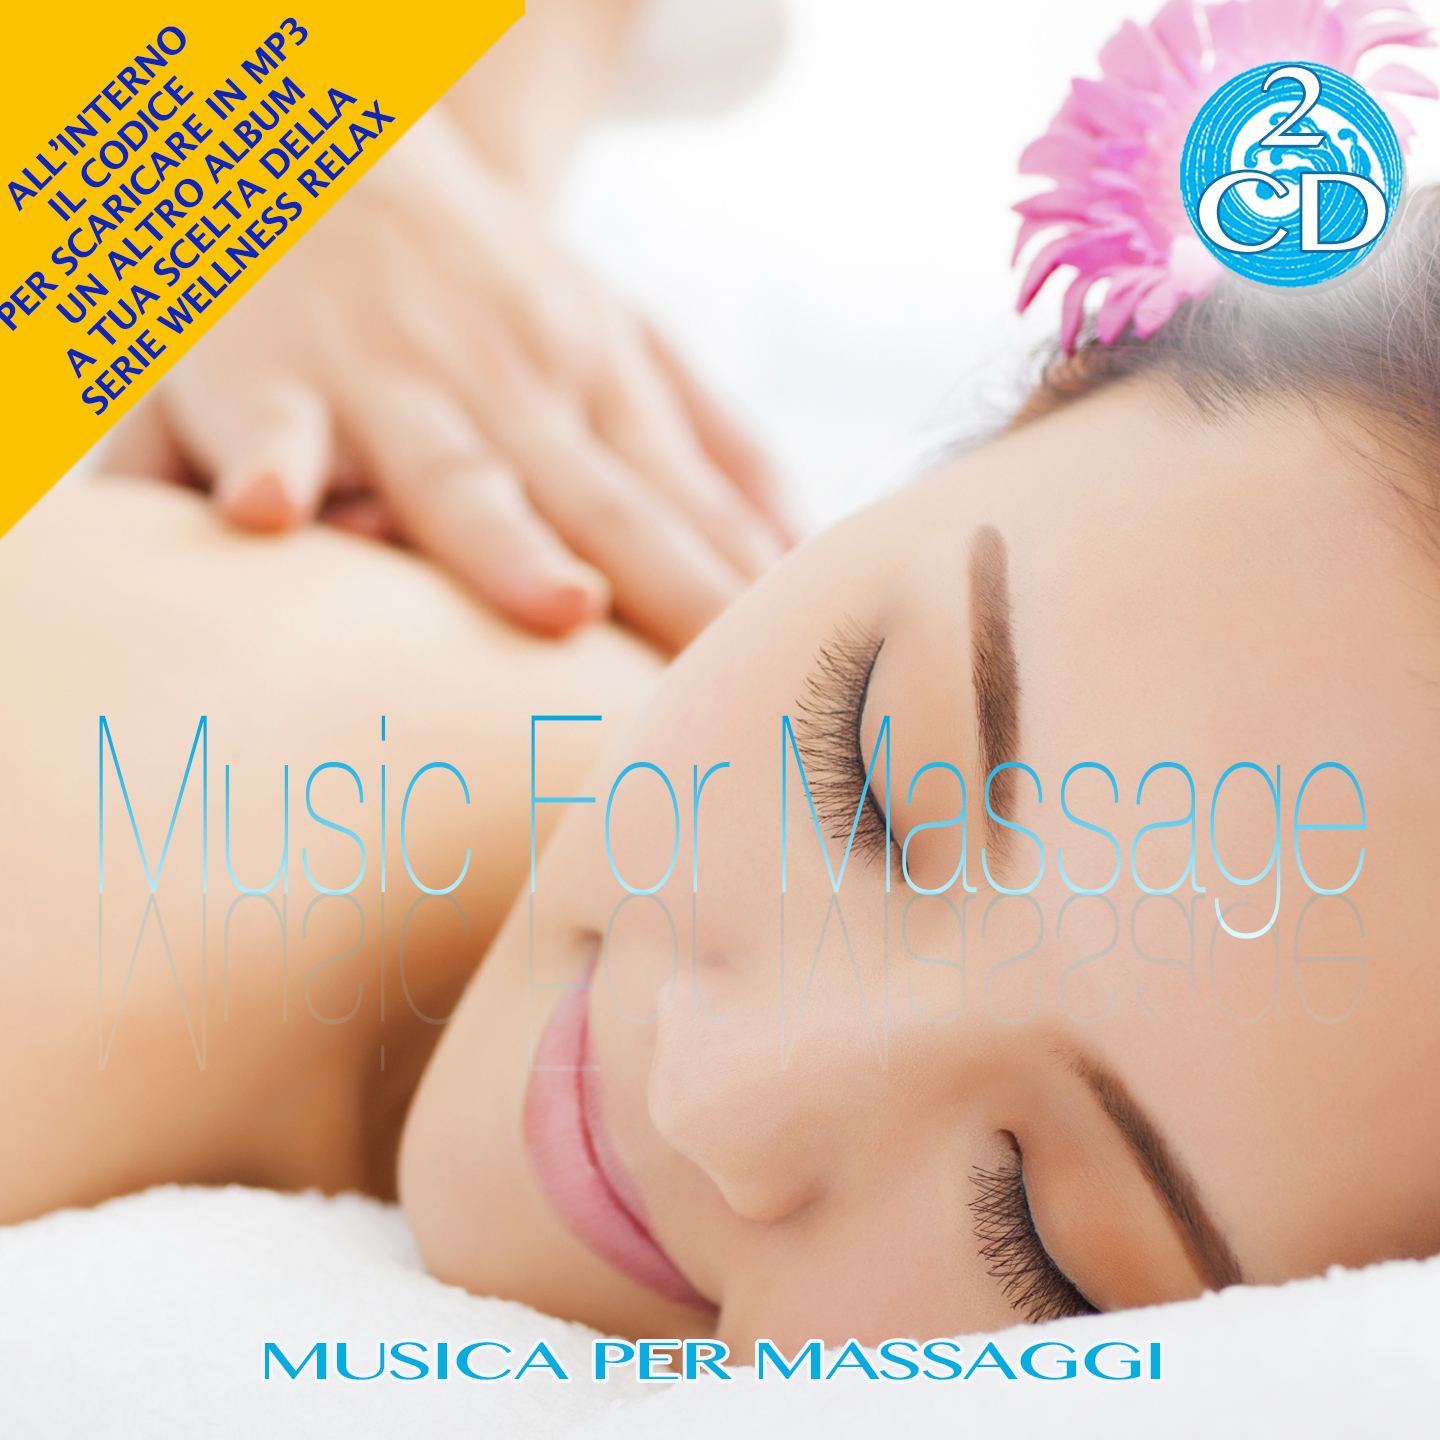 Music for Massage: Musica per massaggi